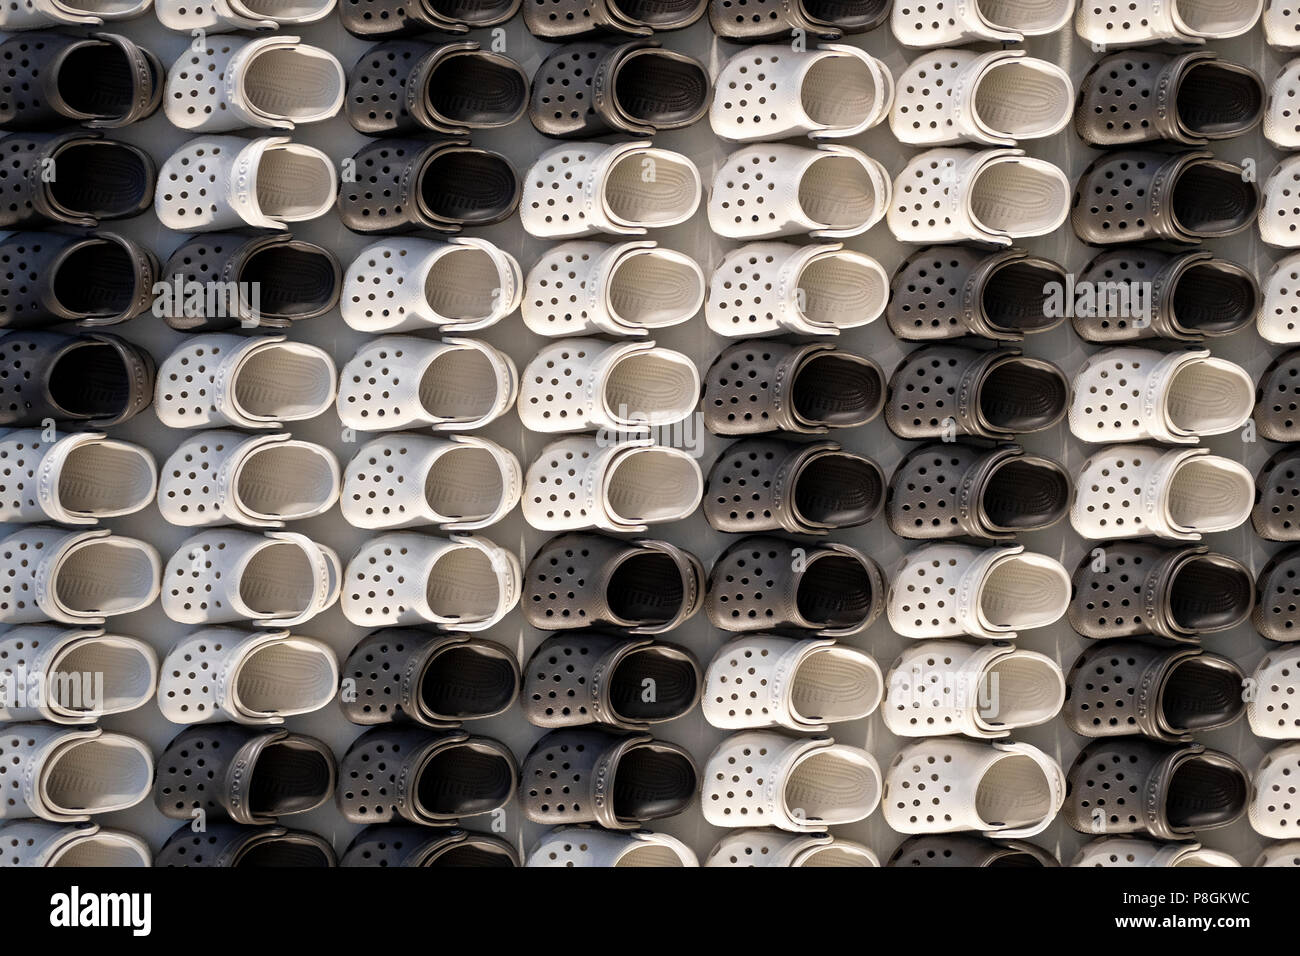 An abstract display of miniature Crocs at the entrance to the Croc Store on West 34th Street in Manhattan, New York City. - Stock Image